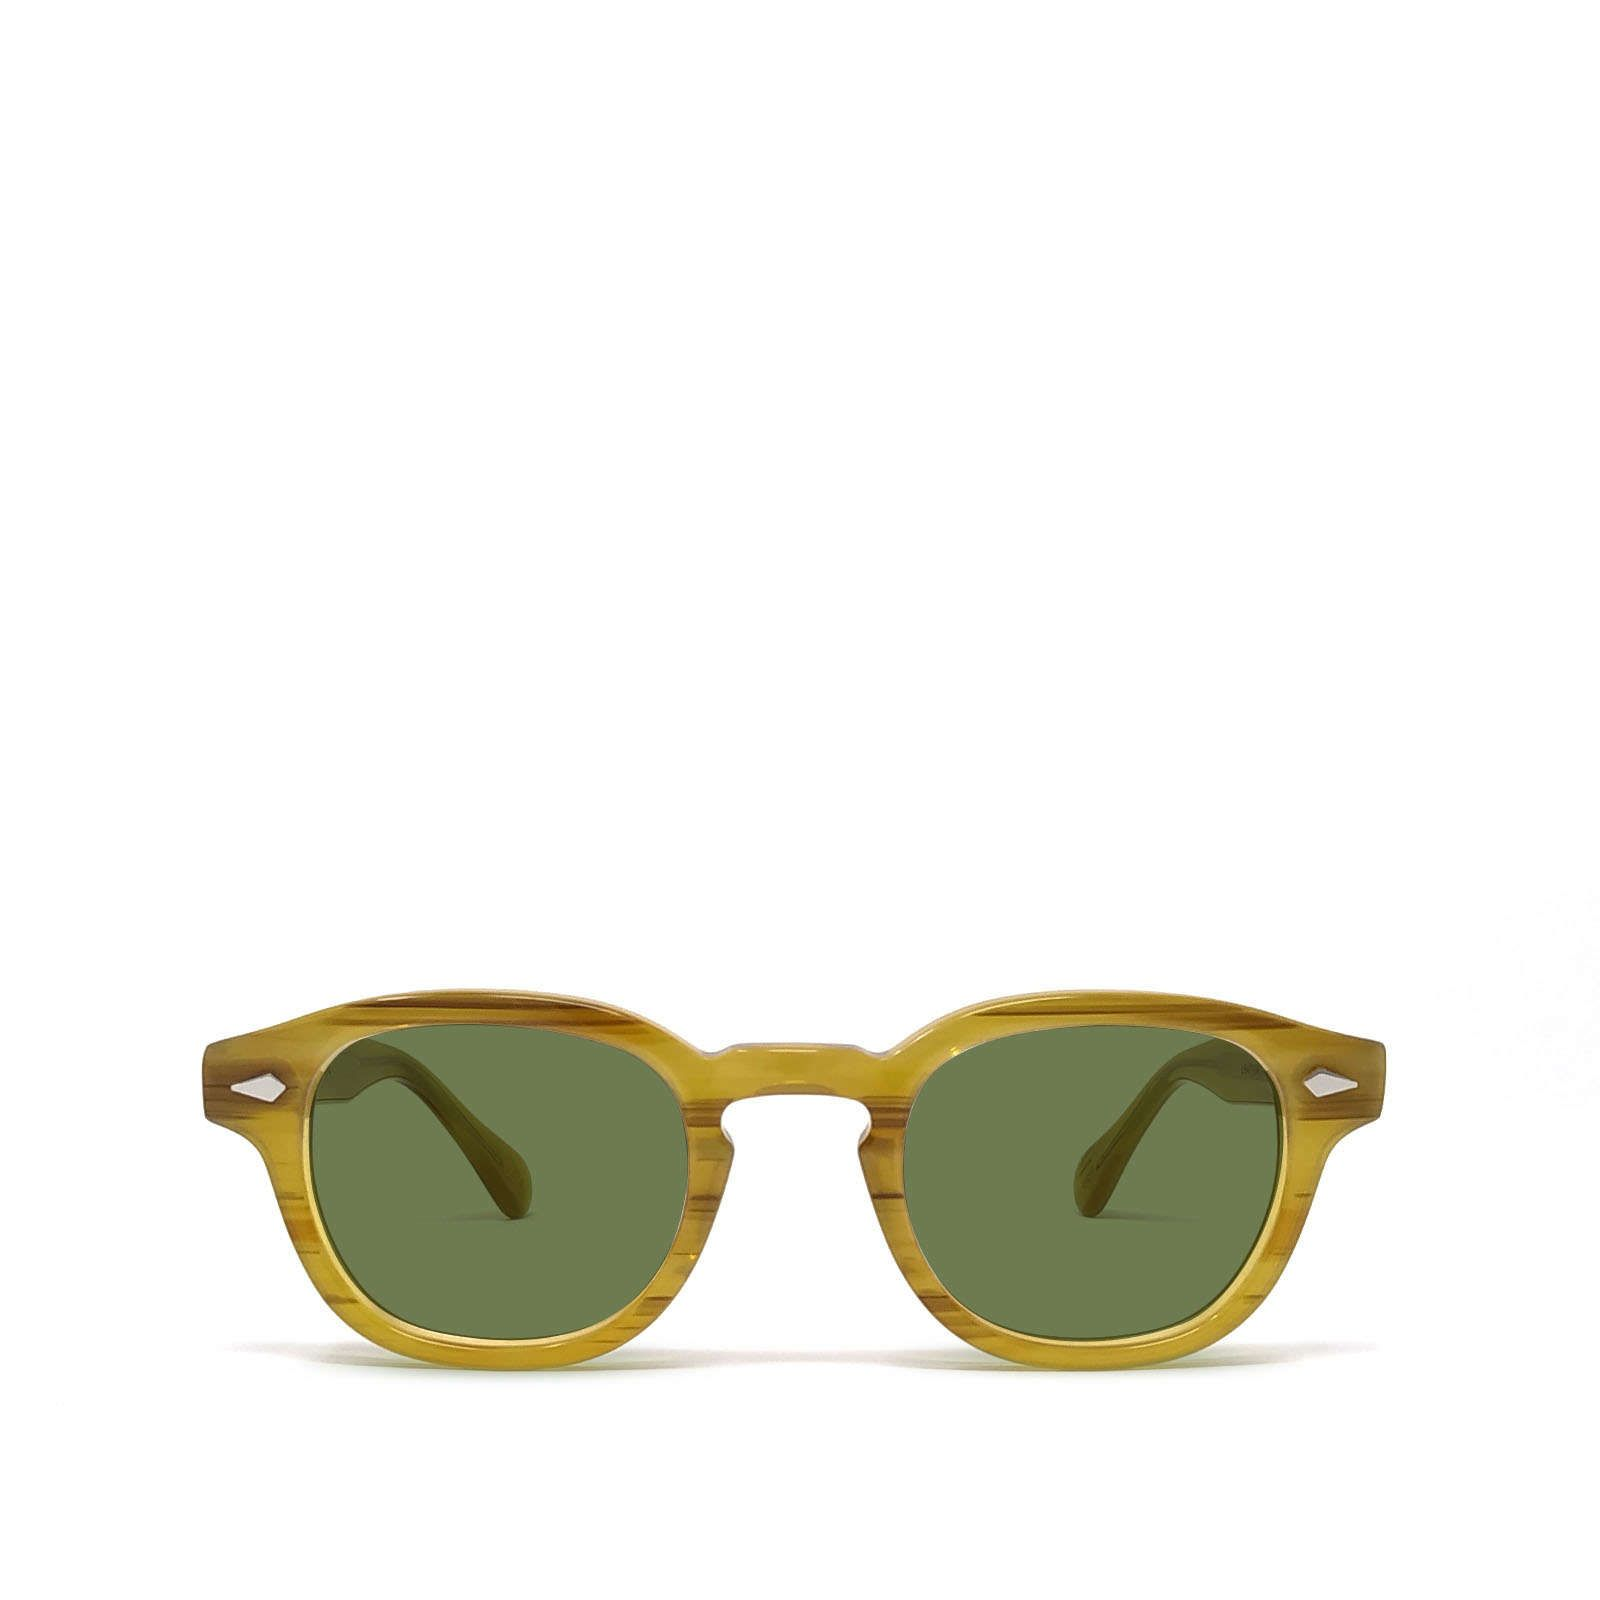 Moscot MOSCOT WOMEN'S BROWN METAL SUNGLASSES